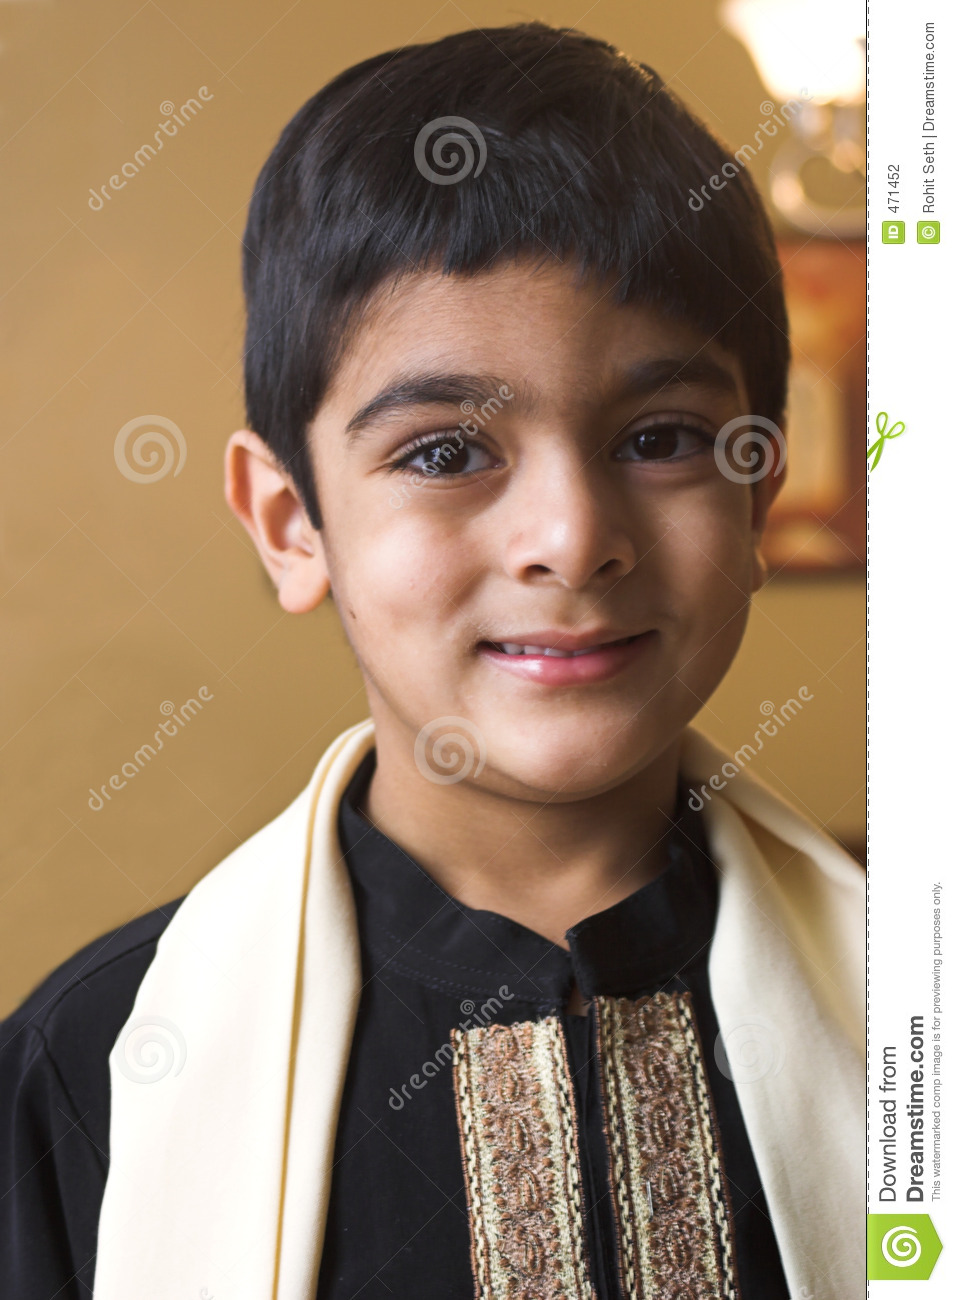 Boy In Formal Indian Attire Stock Photo - Image of children, male: 471452